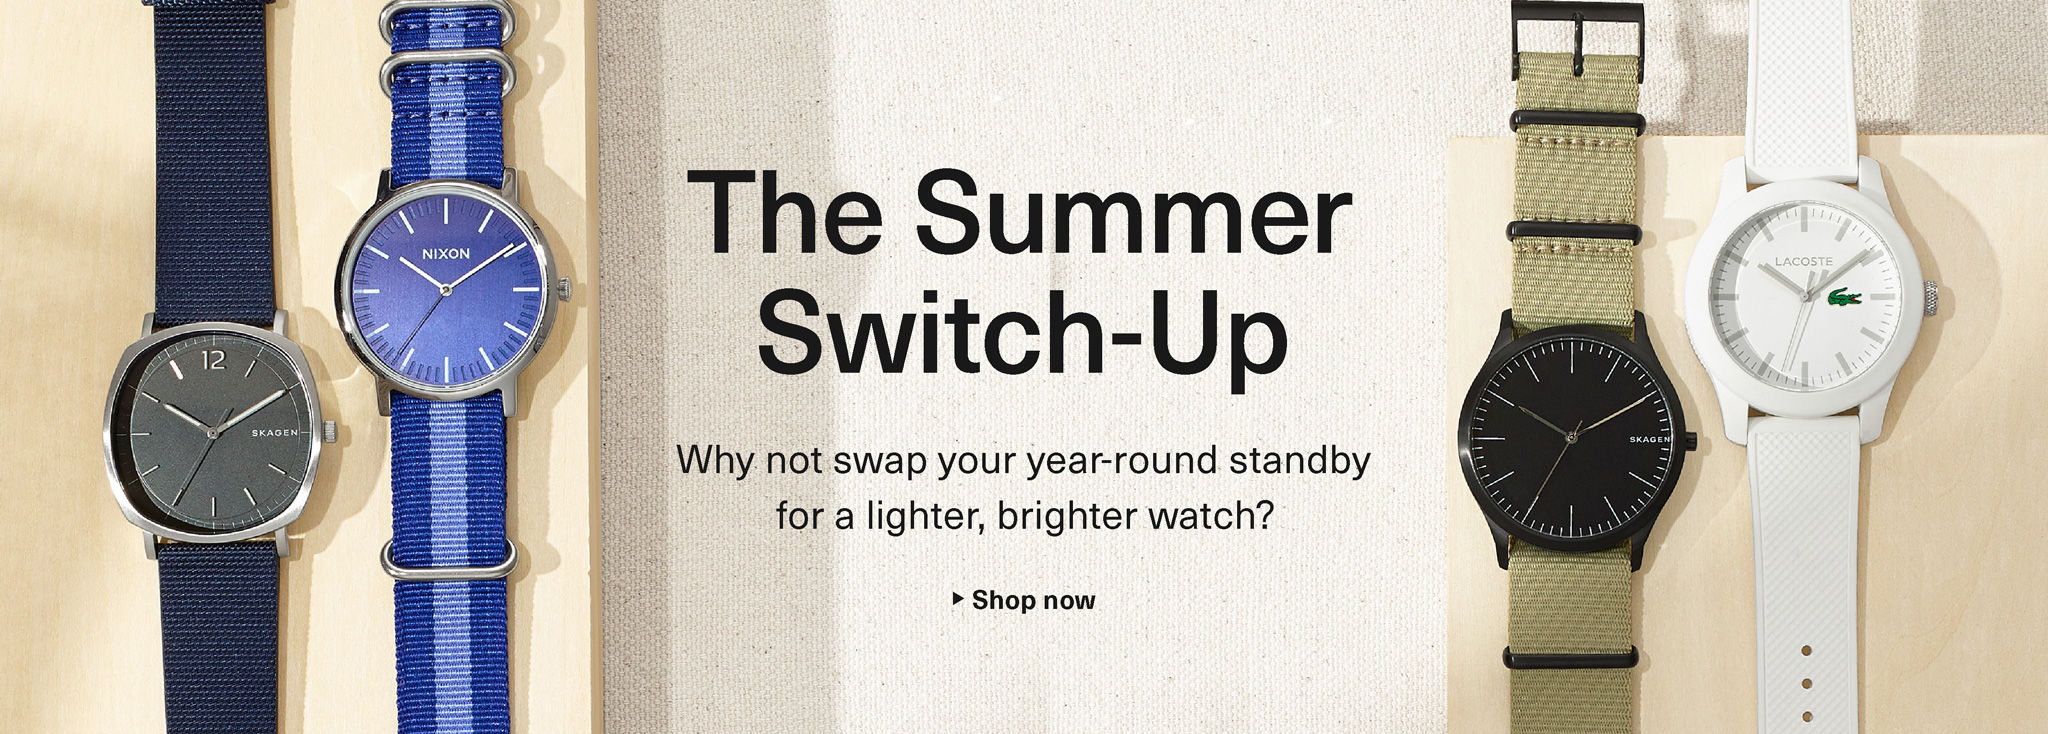 The Summer Switch-Up